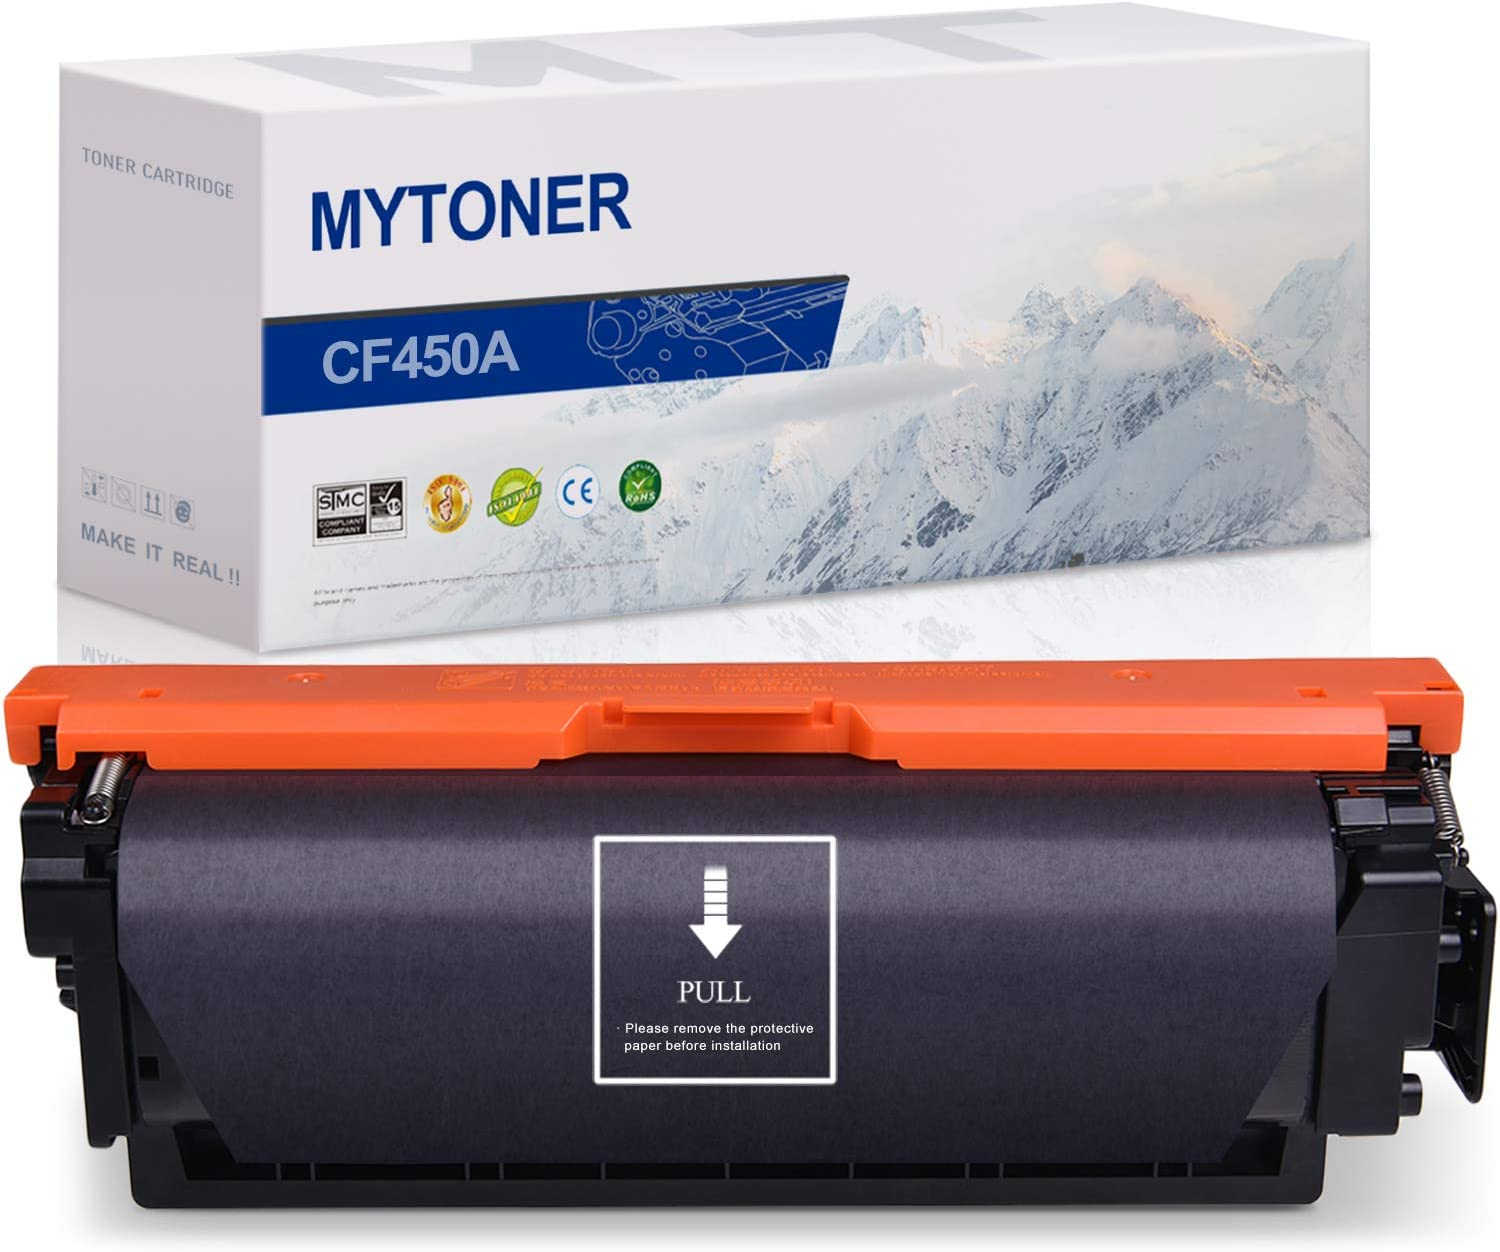 MYTONER Compatible Toner Cartridge Replacement for HP 655A CF450A Black for Color Laserjet Enterprise M652, M653, M681, M682 (Black, 1-Pack)